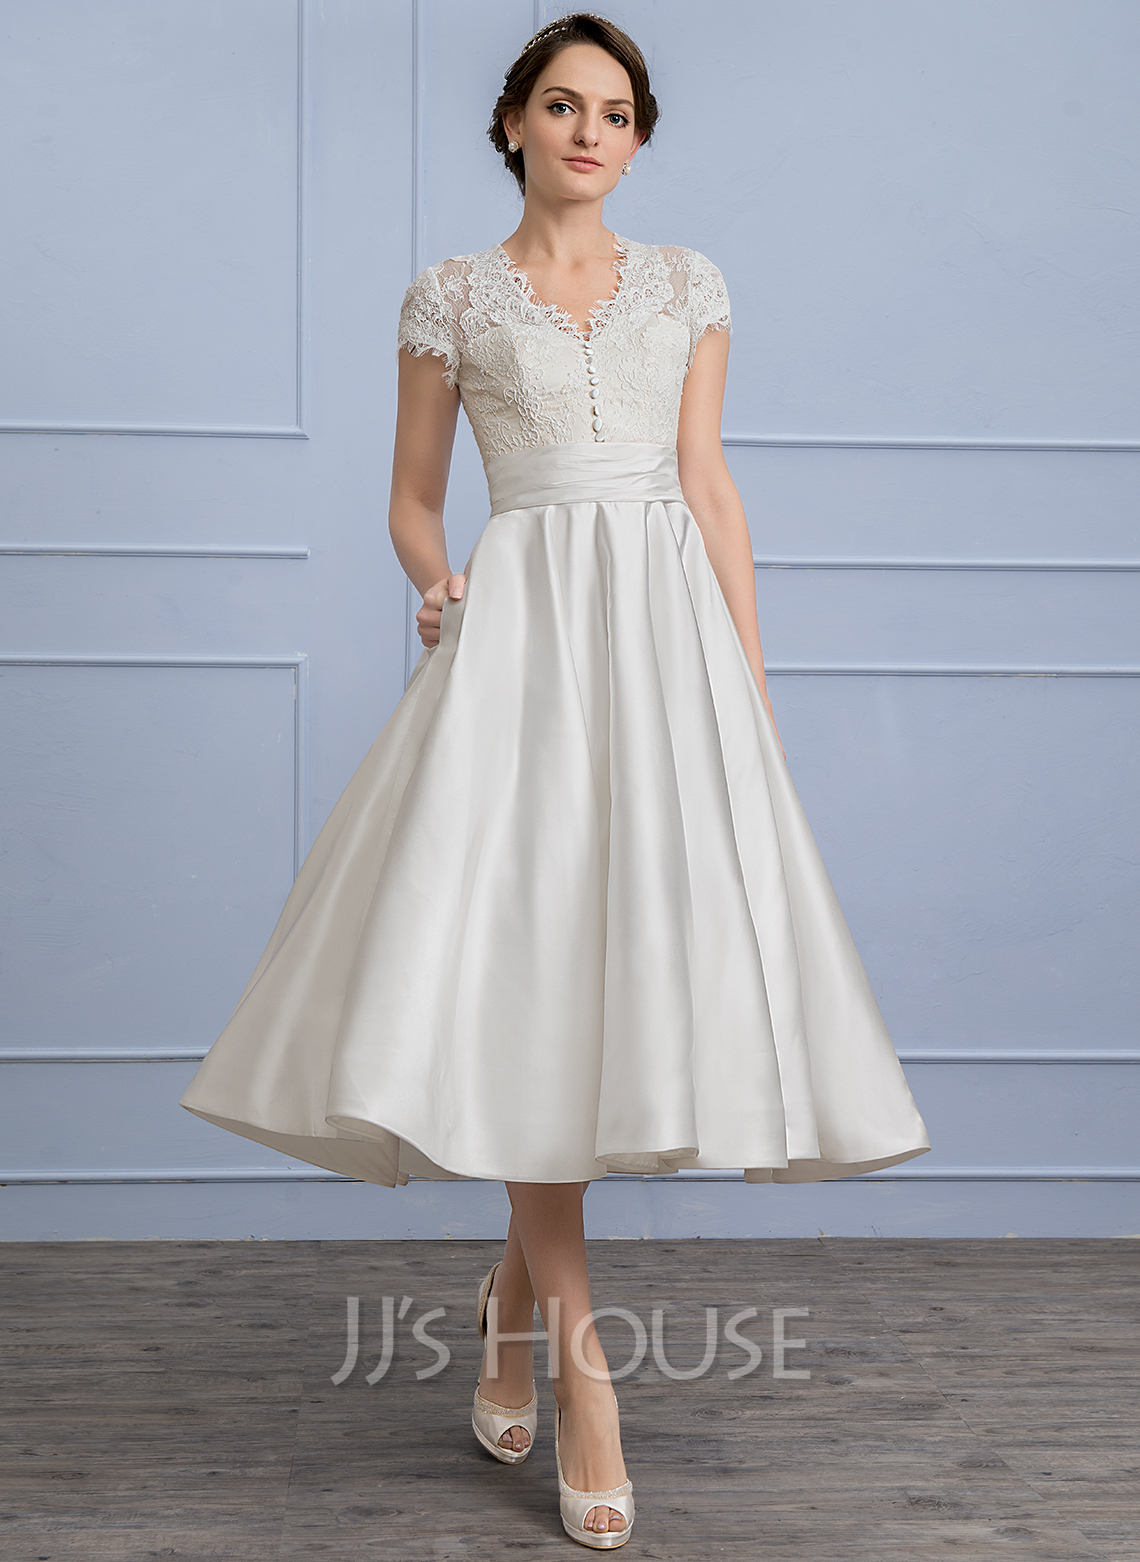 a3903304e70c A-Line/Princess V-neck Tea-Length Satin Wedding Dress With Ruffle. Loading  zoom